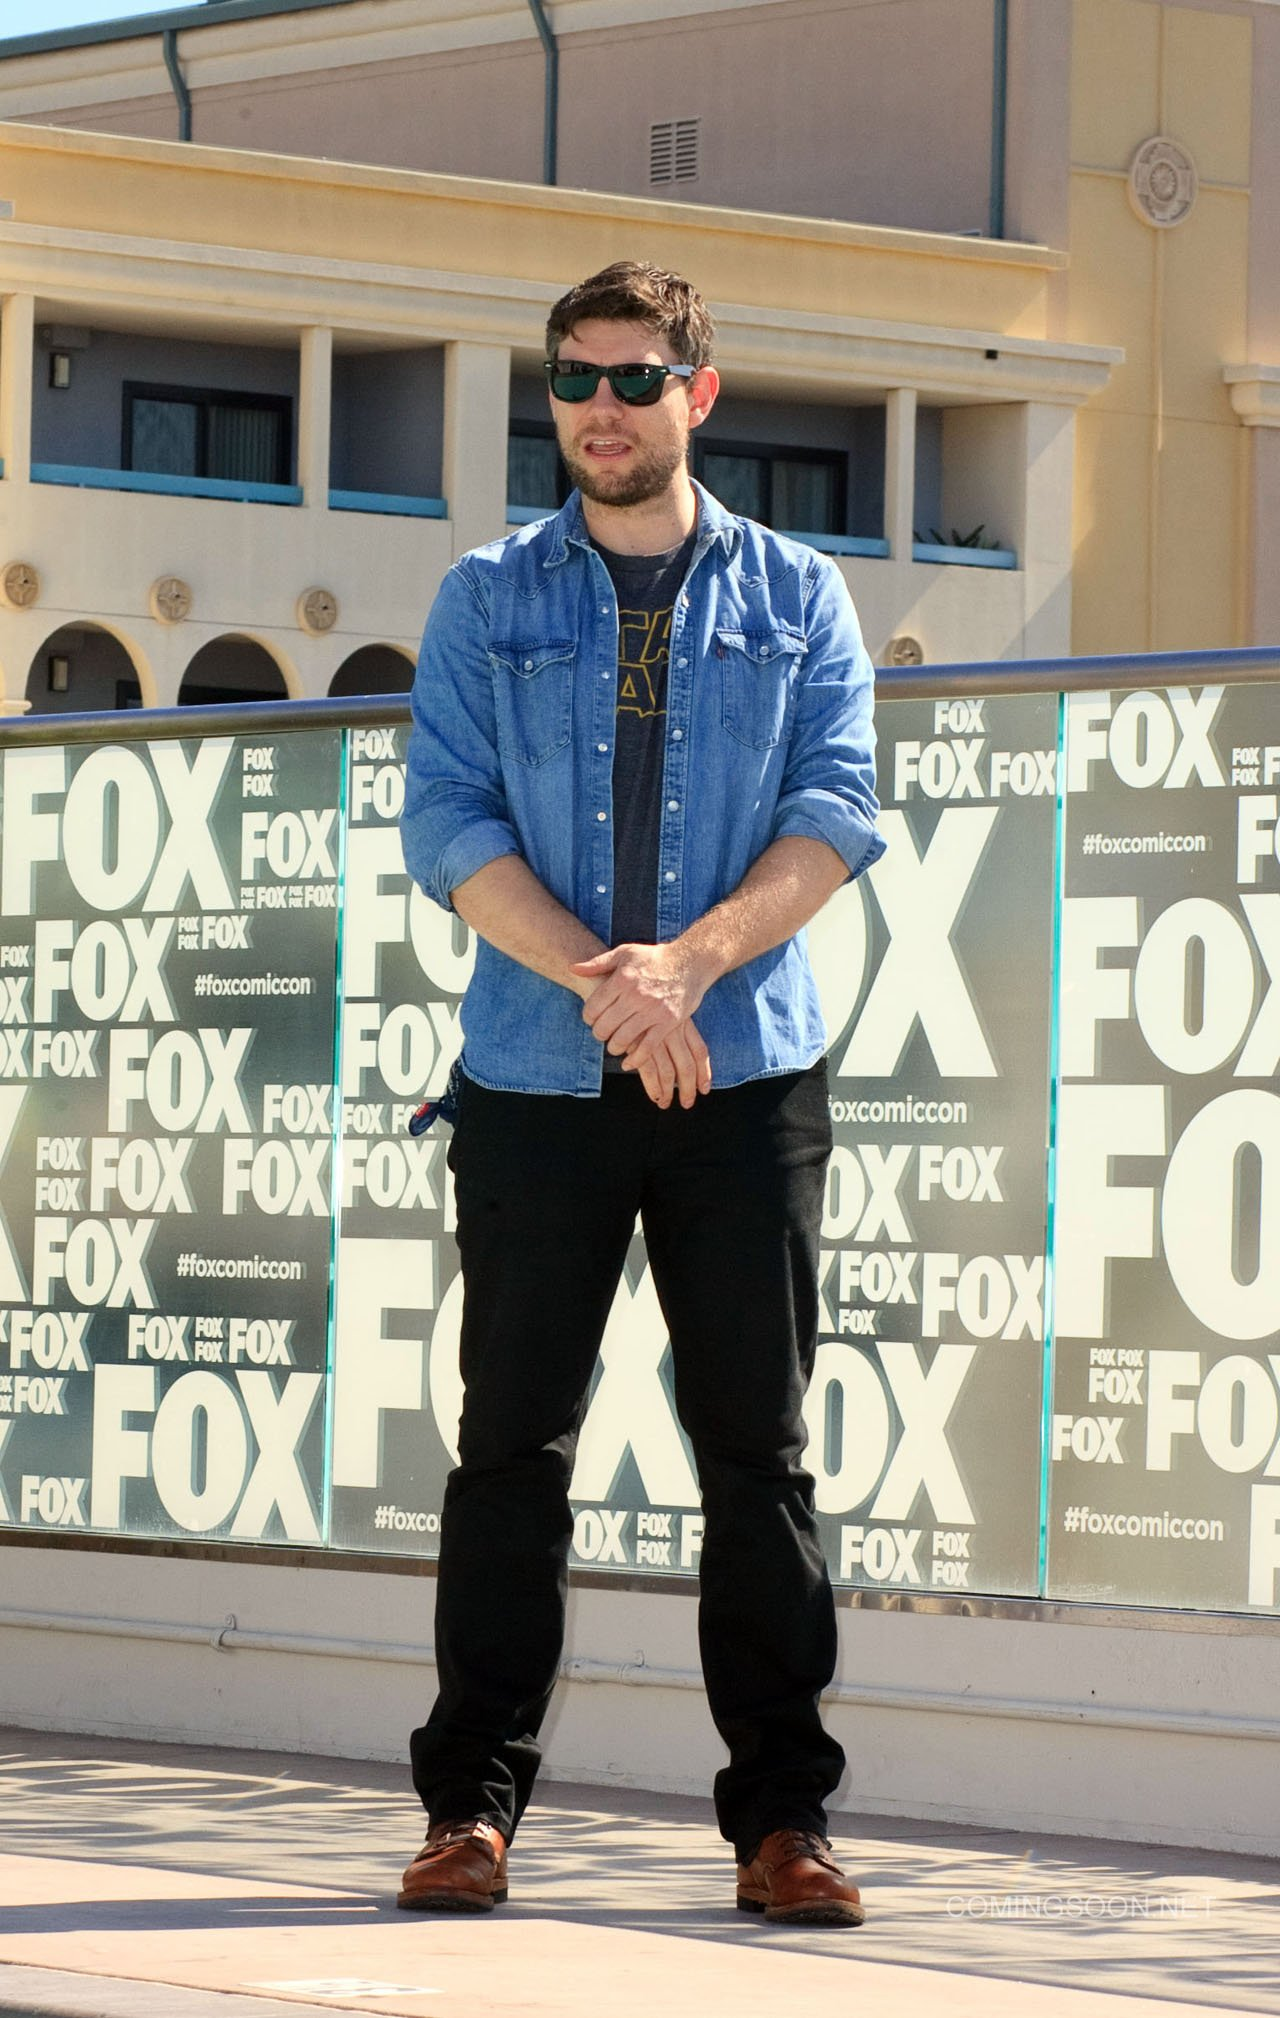 Fox Comic Con breakfast with the cast of Walking Dead and Outcast Featuring: Patrick Fugit Where: San Diego, California, United States When: 22 Jul 2016 Credit: Tony Forte/WENN